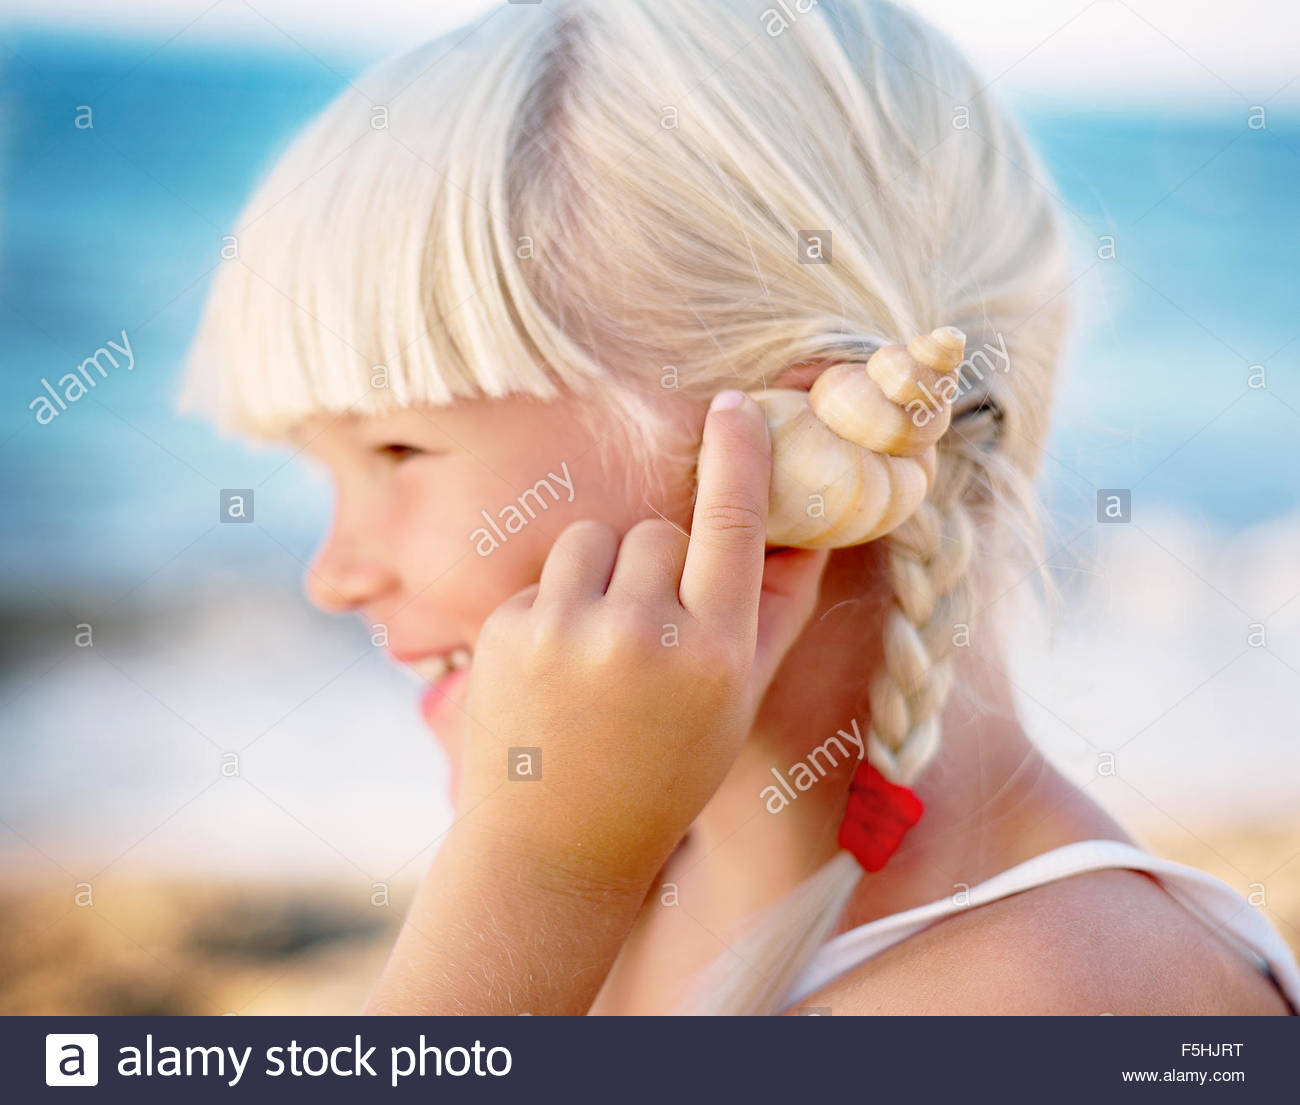 Greece, Crete, Girl (6-7) holding seashell close to ear - Stock Image